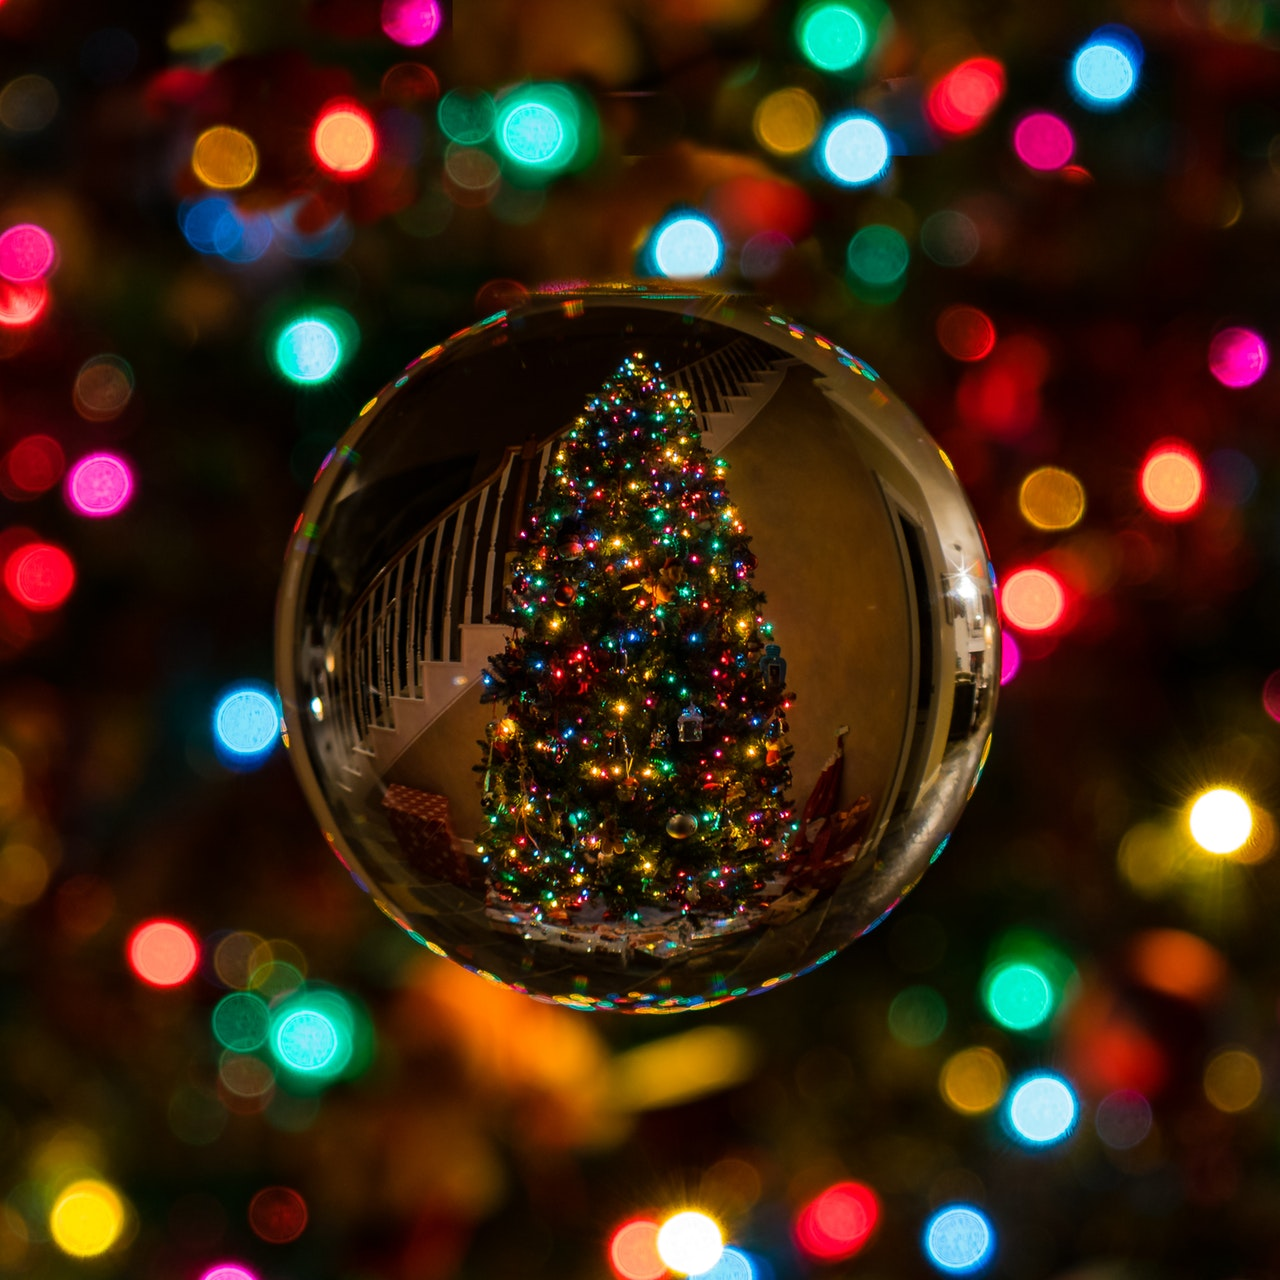 Christmas Carols, Decorations And Food Fines In The US